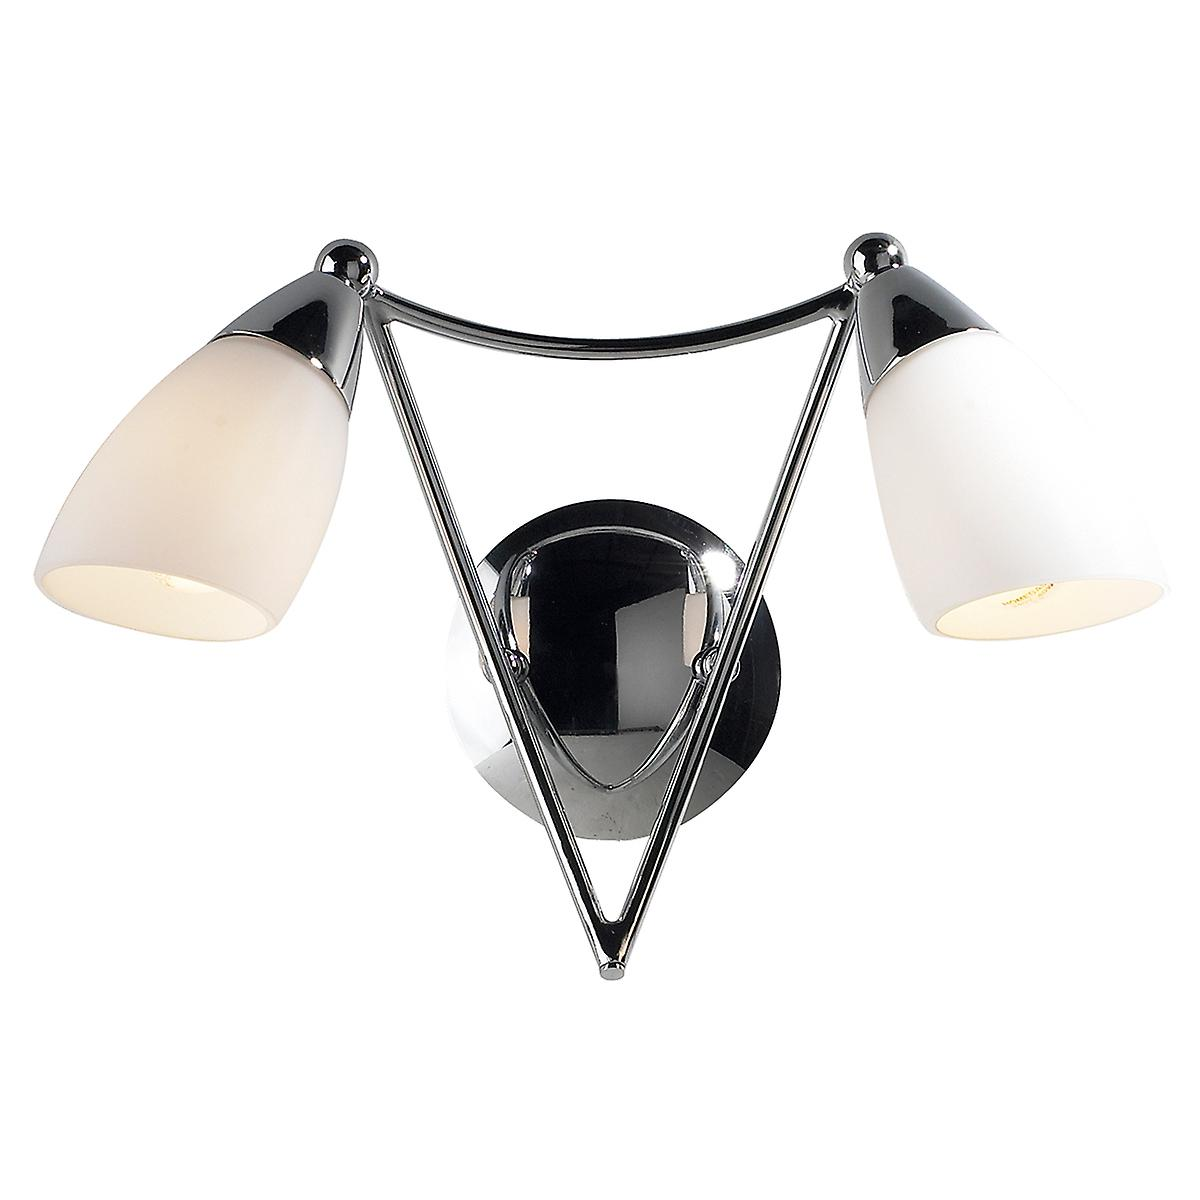 Dar BUR0950 Bureau Modern Chrome Switched Wall Light With Opal Glass